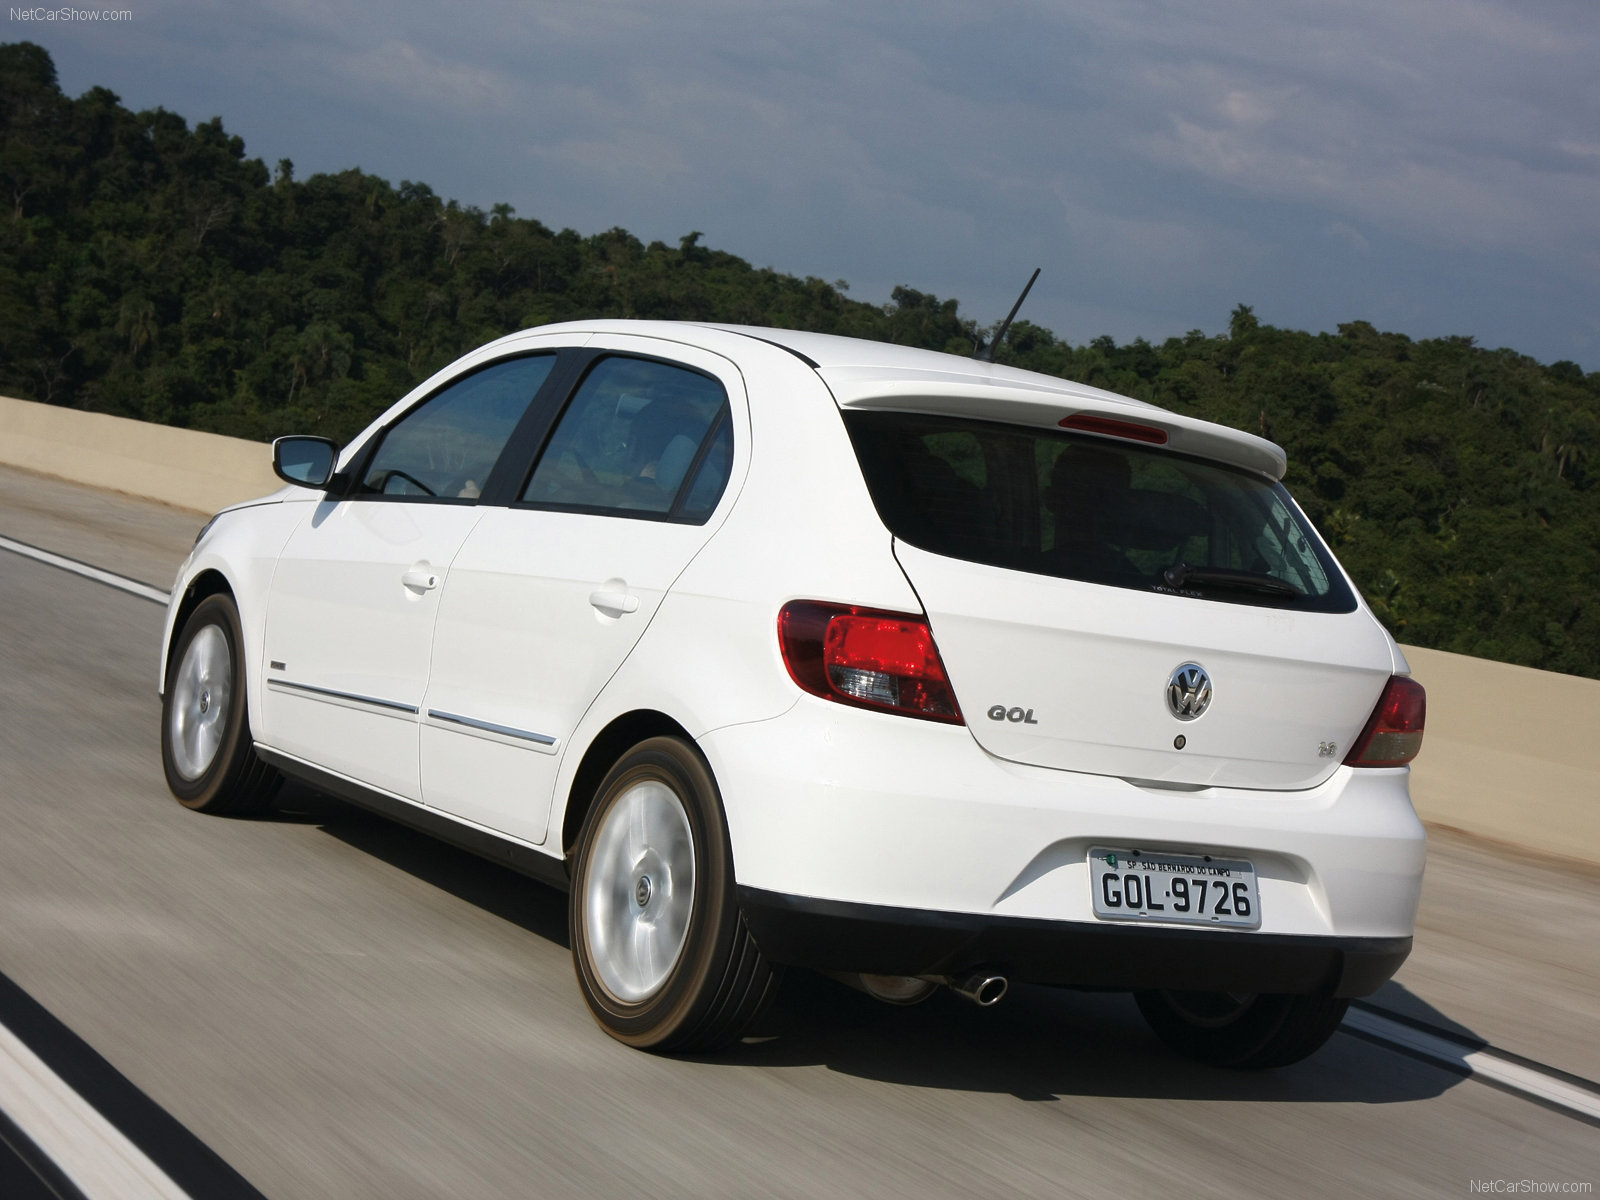 Volkswagen Gol Photos Photogallery With 5 Pics Carsbase Com